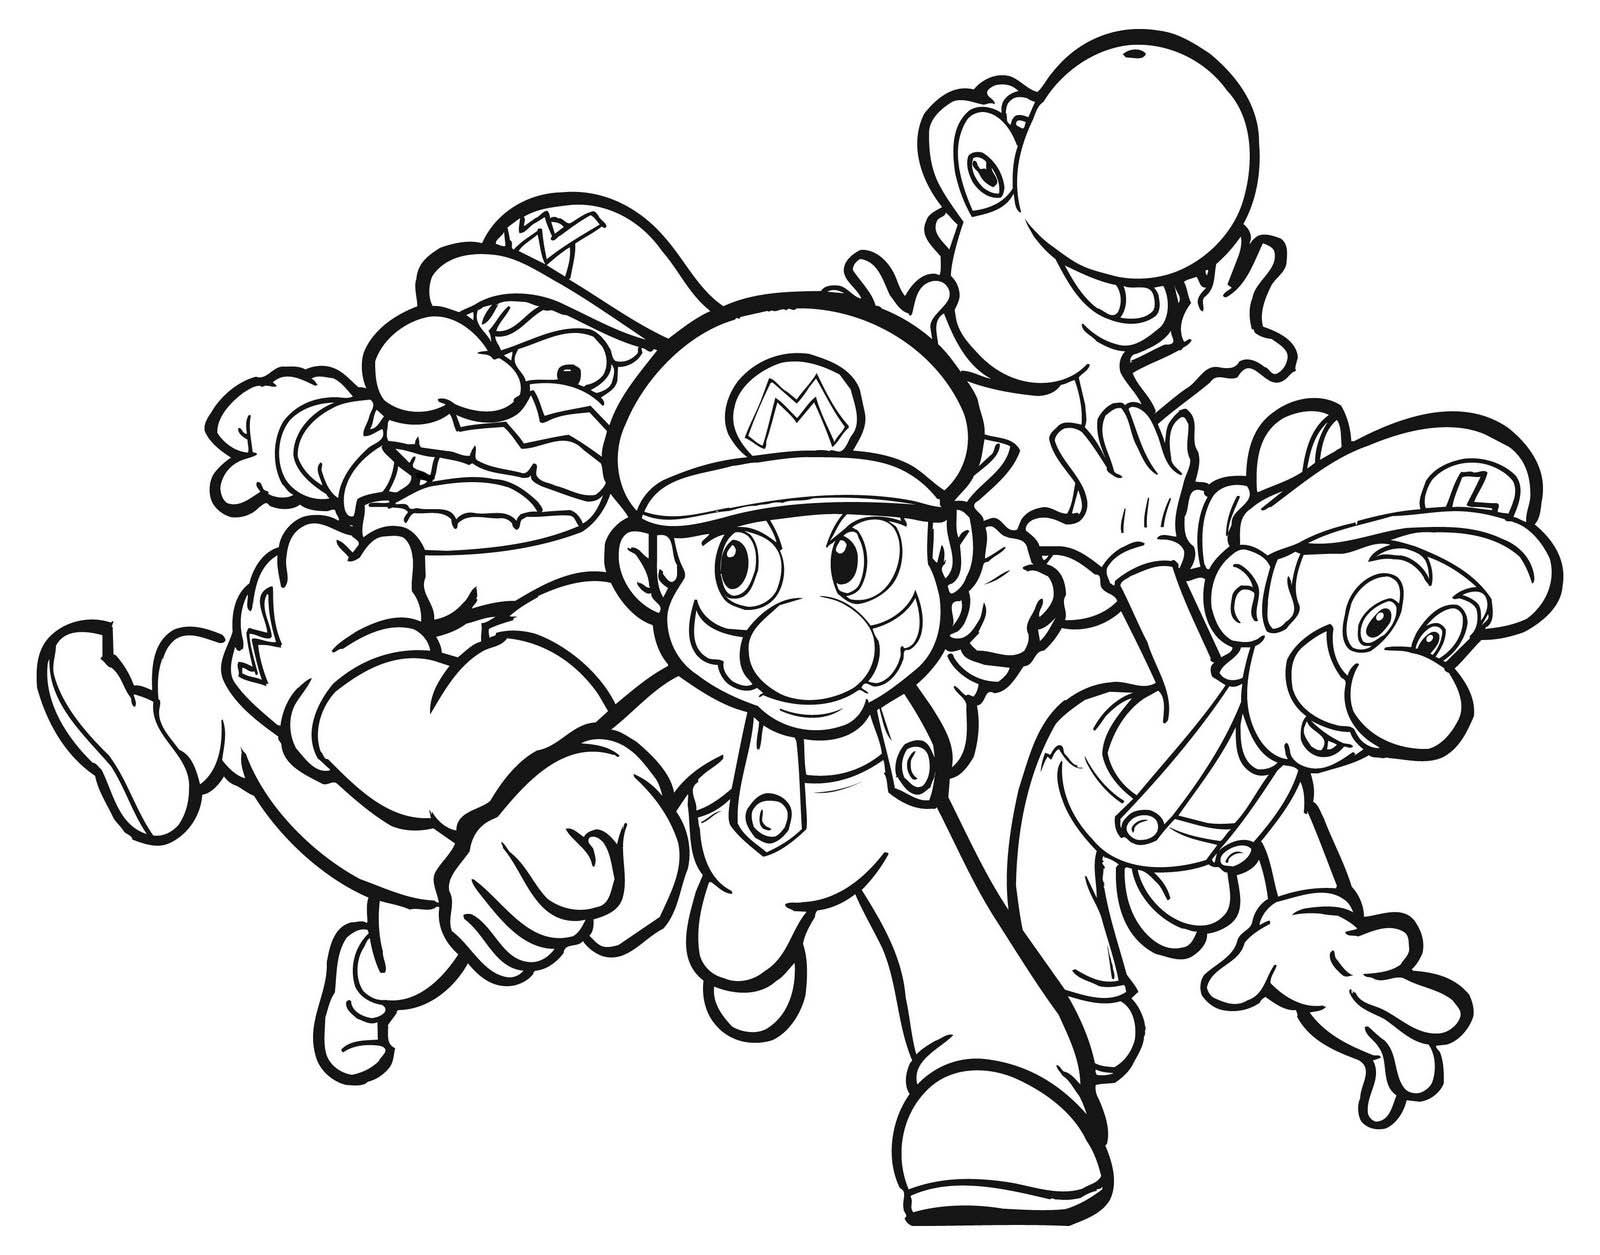 Free Printable Mario Coloring Pages For Kids Mario Coloring Pages Super Mario Coloring Pages Abstract Coloring Pages